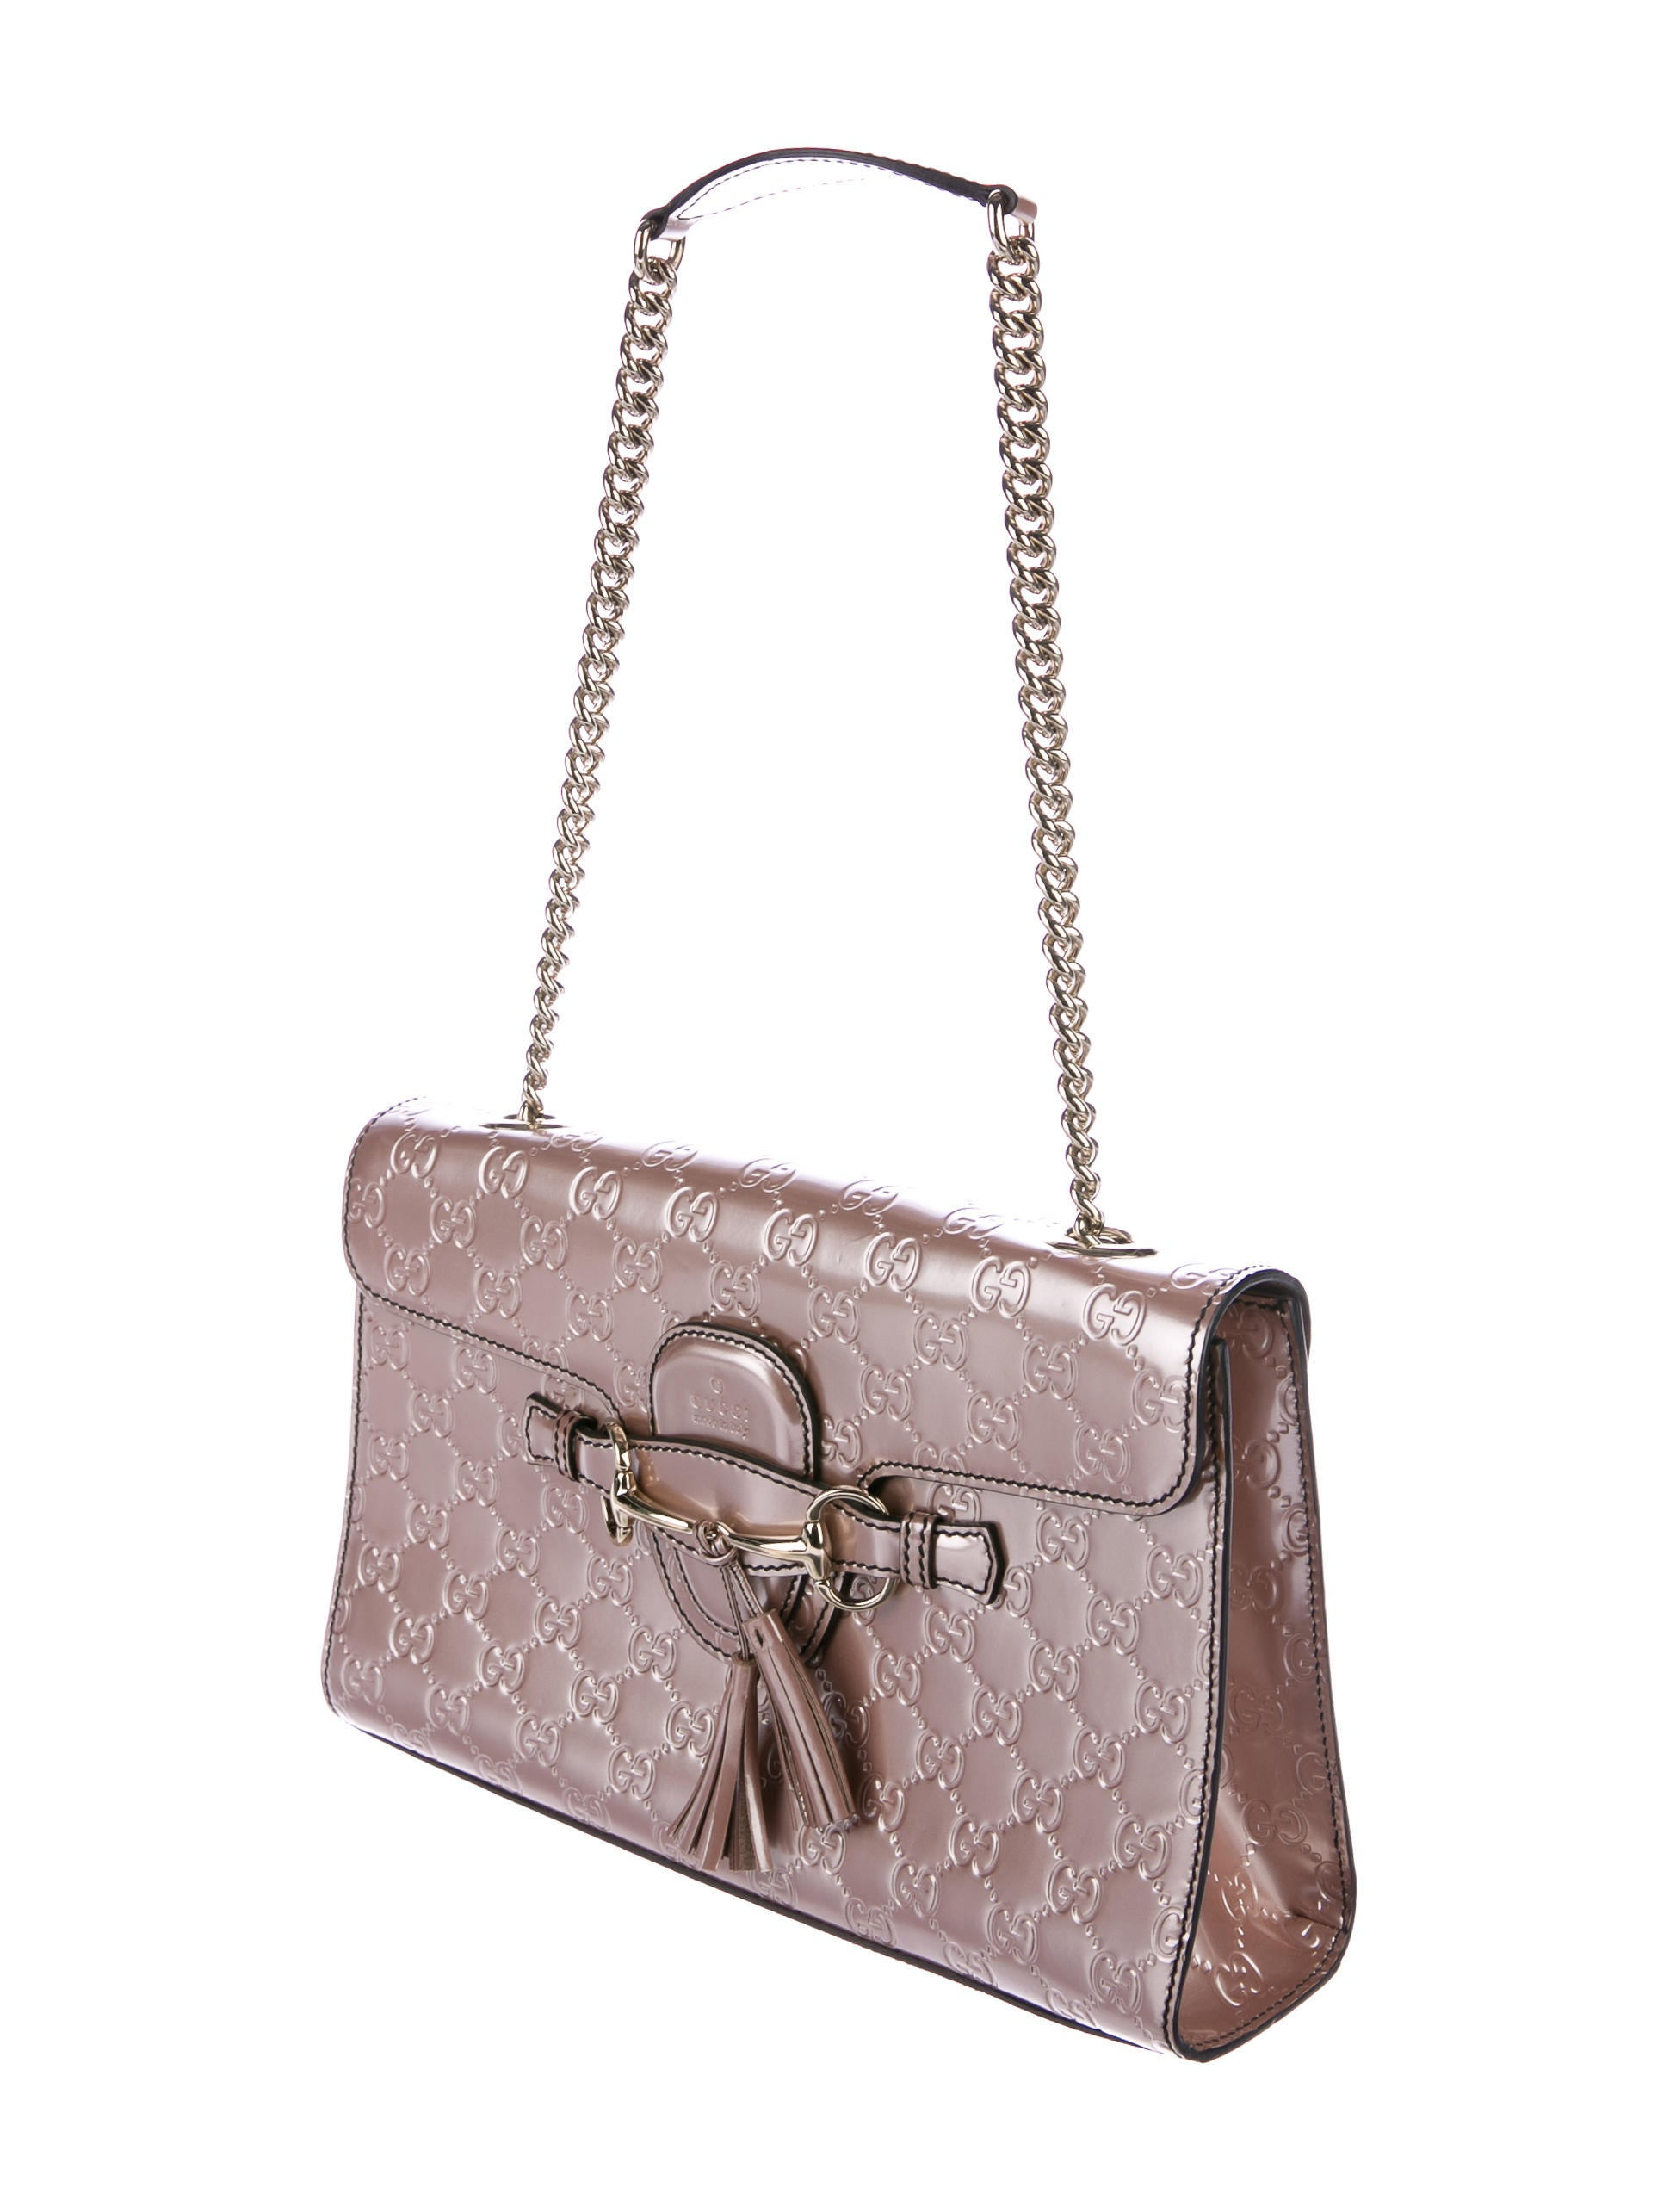 0082dbb95d59 Gucci Emily Bag Price India | Stanford Center for Opportunity Policy ...